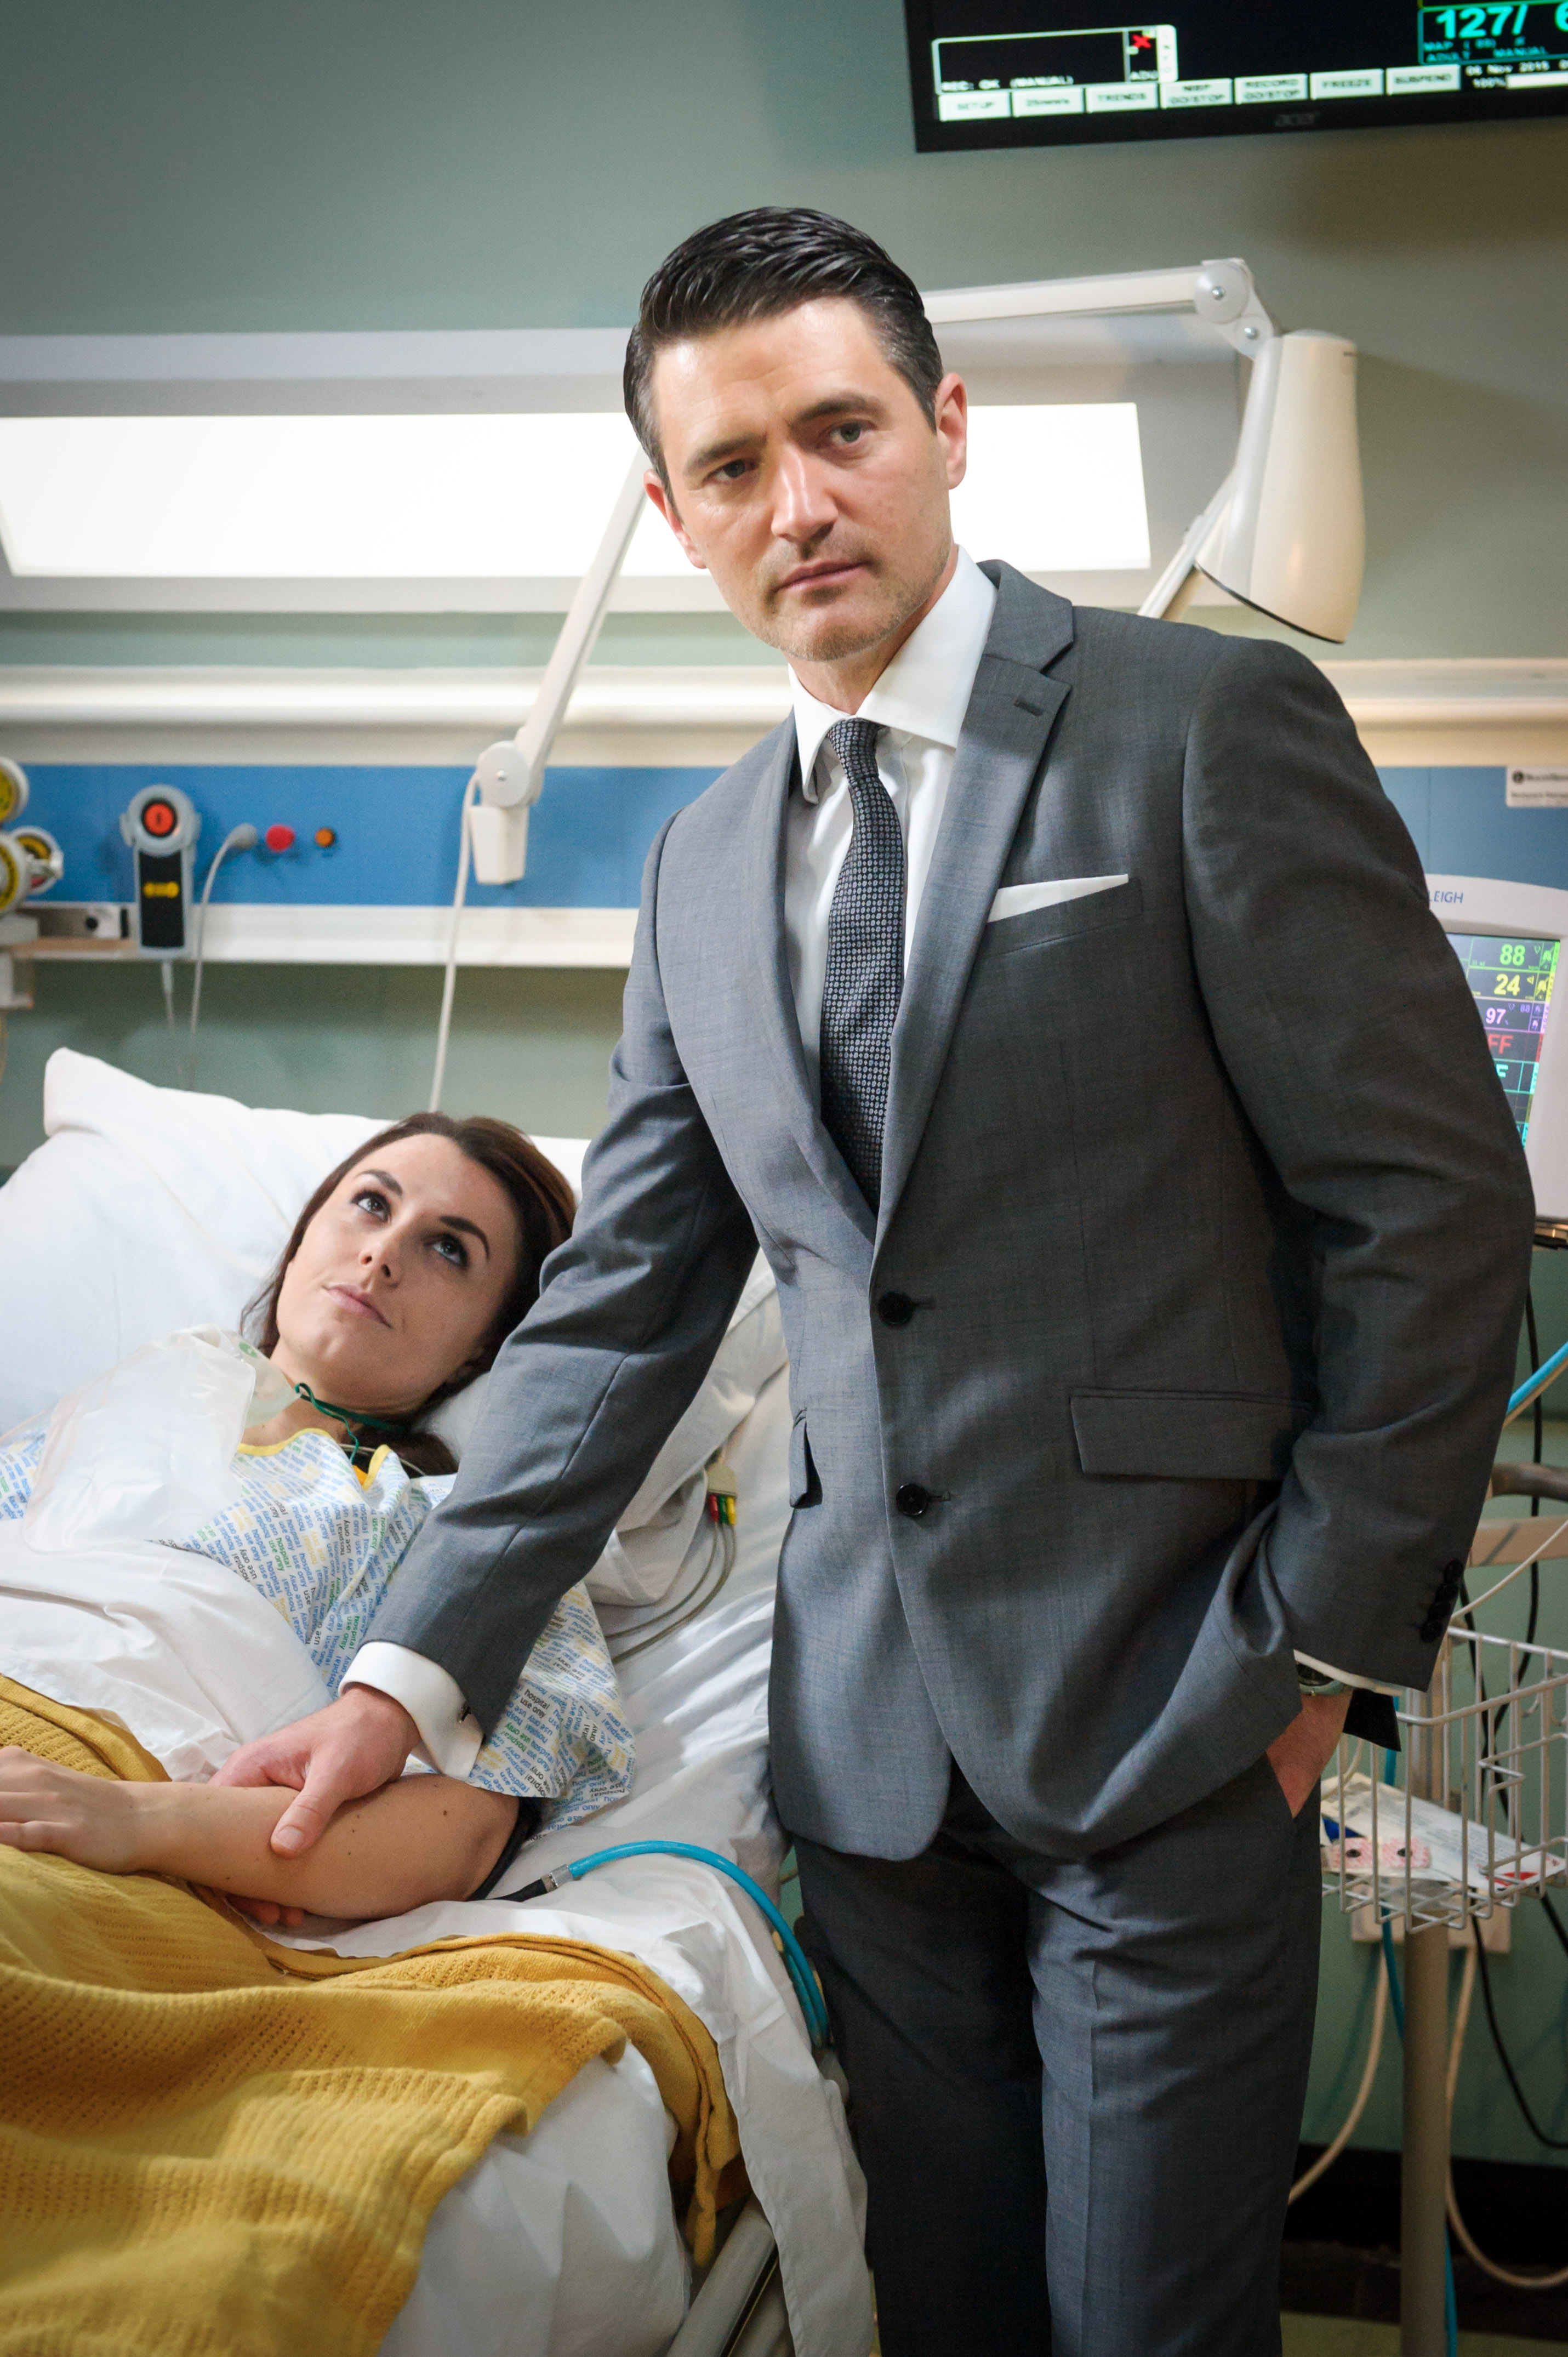 Casualty s Tom Chambers The electricity between Connie and Sam